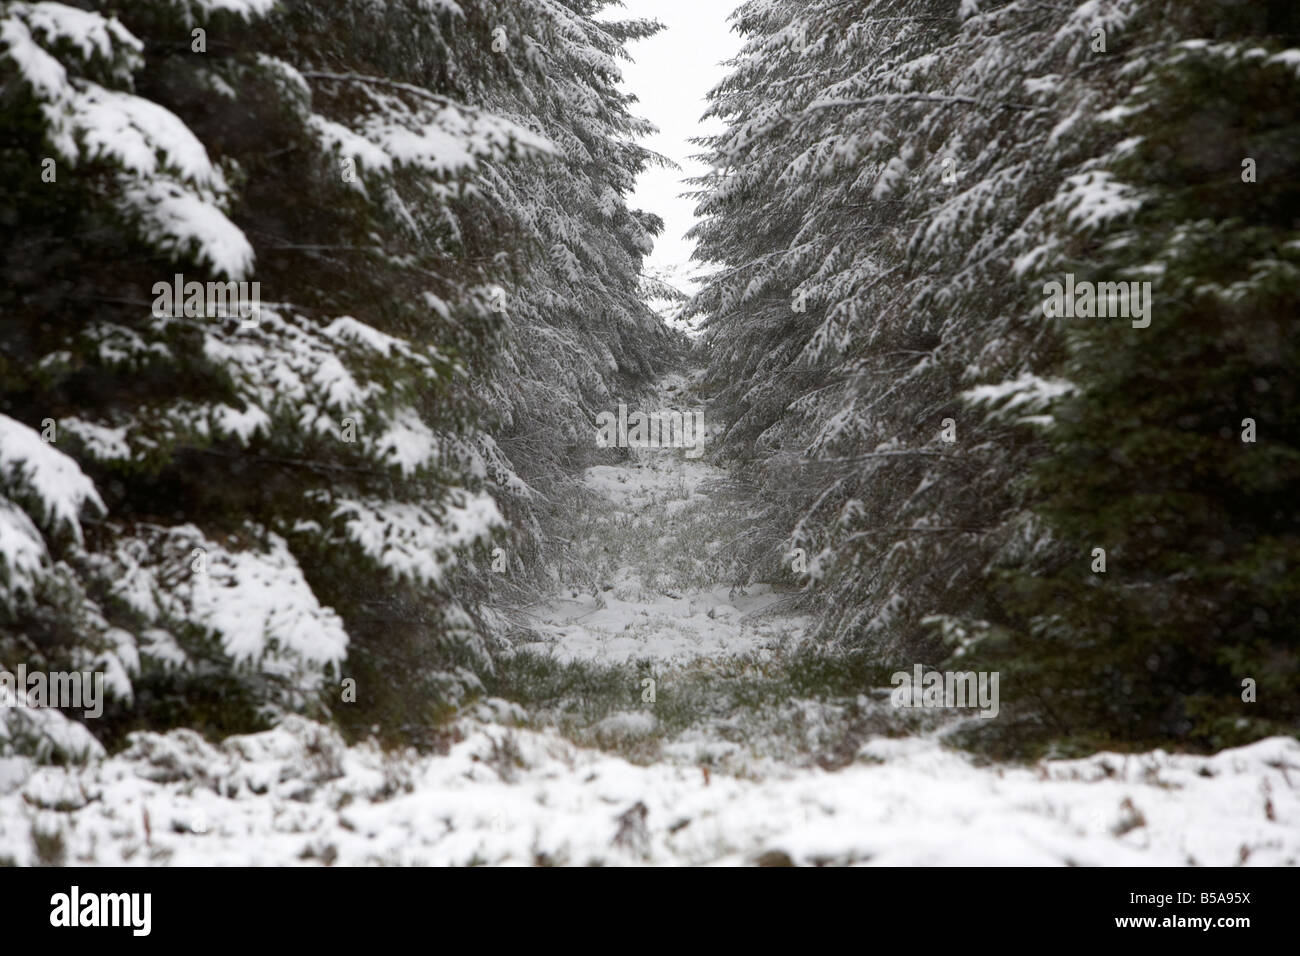 firebreak in a coniferous forest covered in snow county antrim northern ireland uk - Stock Image